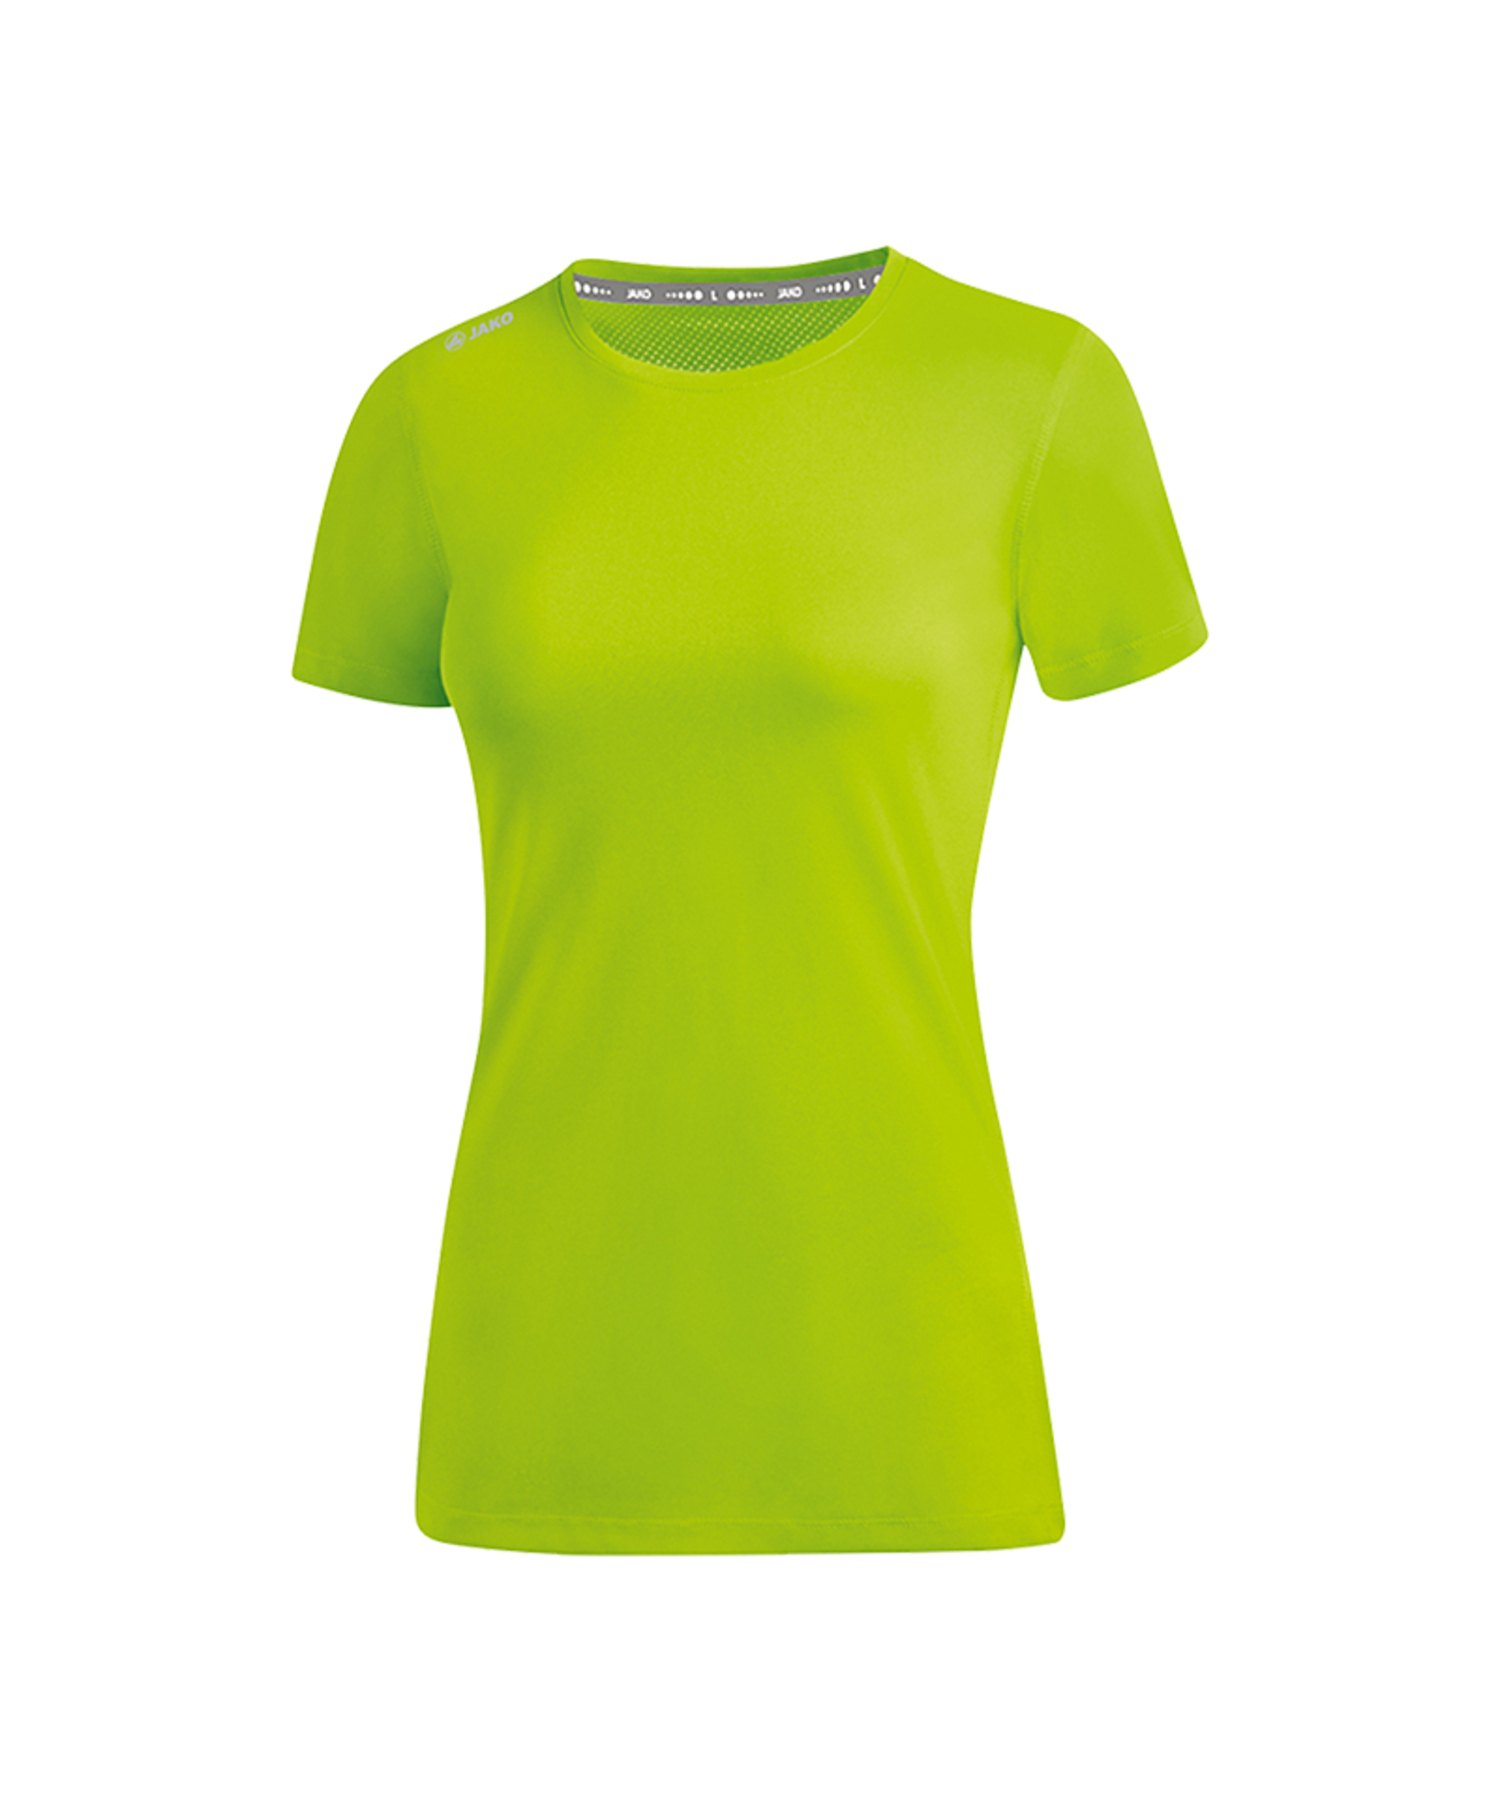 Jako Run 2.0 T-Shirt Running Damen Grün F25 - Gruen